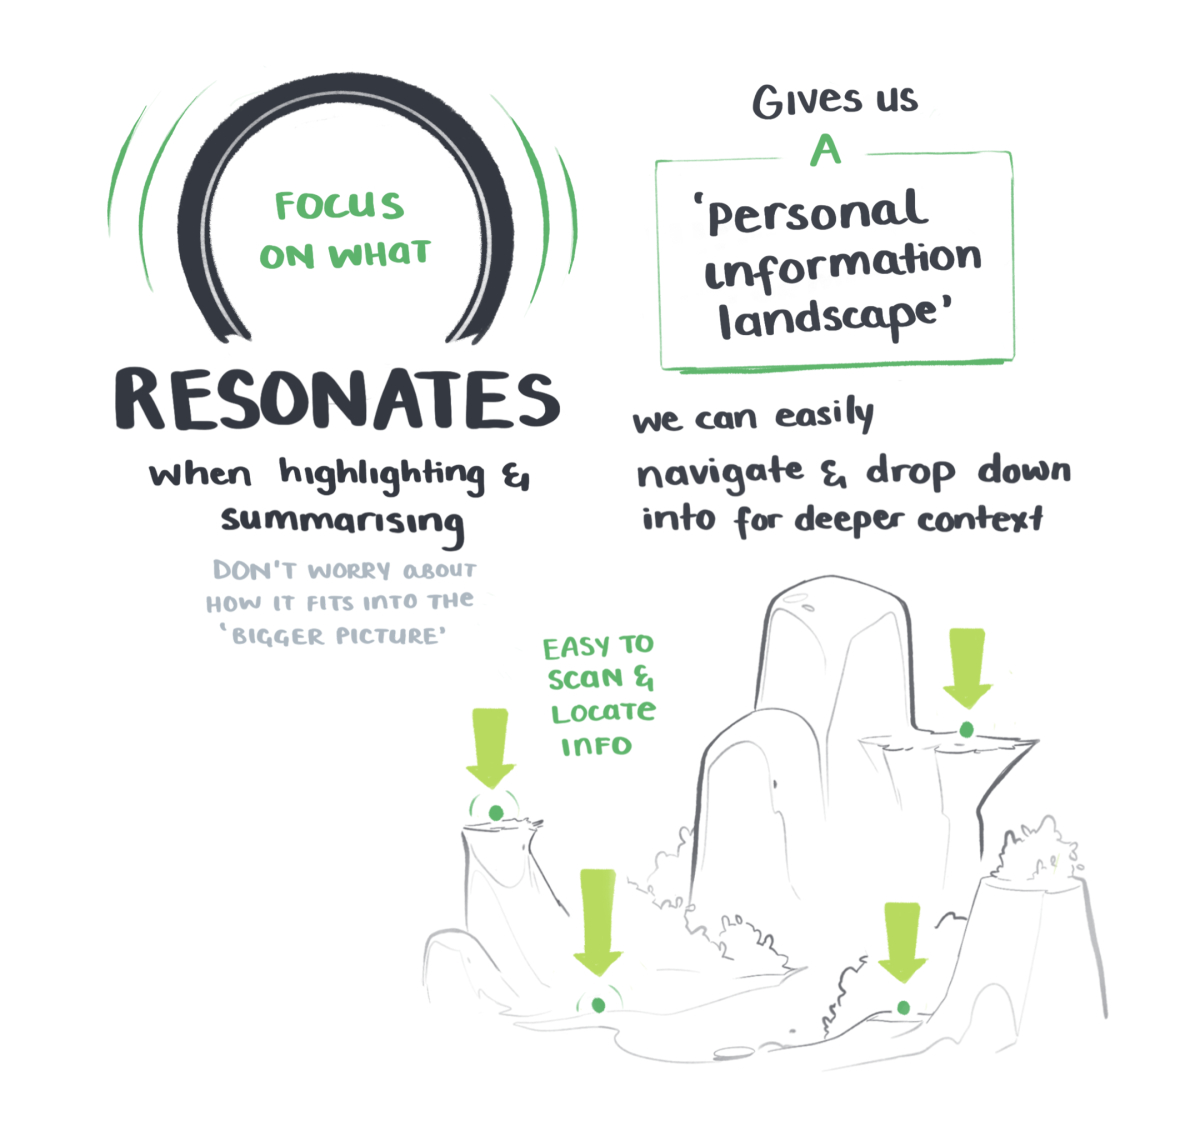 BASB sketchnotes on focusing on what resonates when summarising your notes